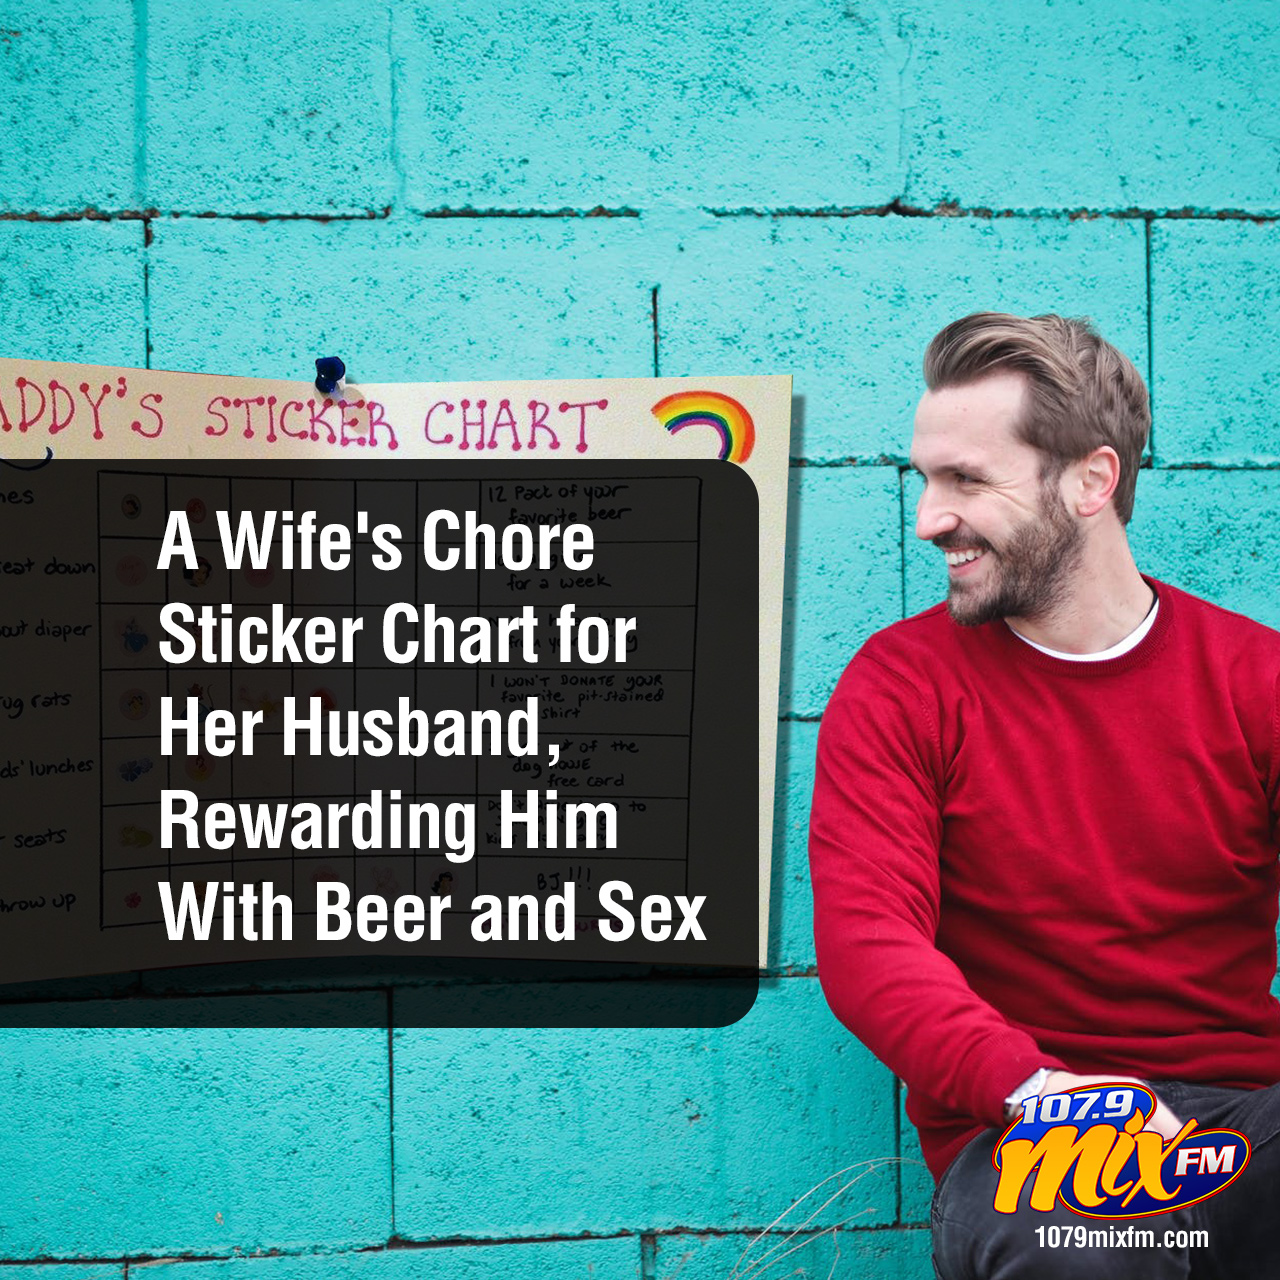 A Wife's Chore Sticker Chart for Her Husband, Rewarding Him With Beer & Sex